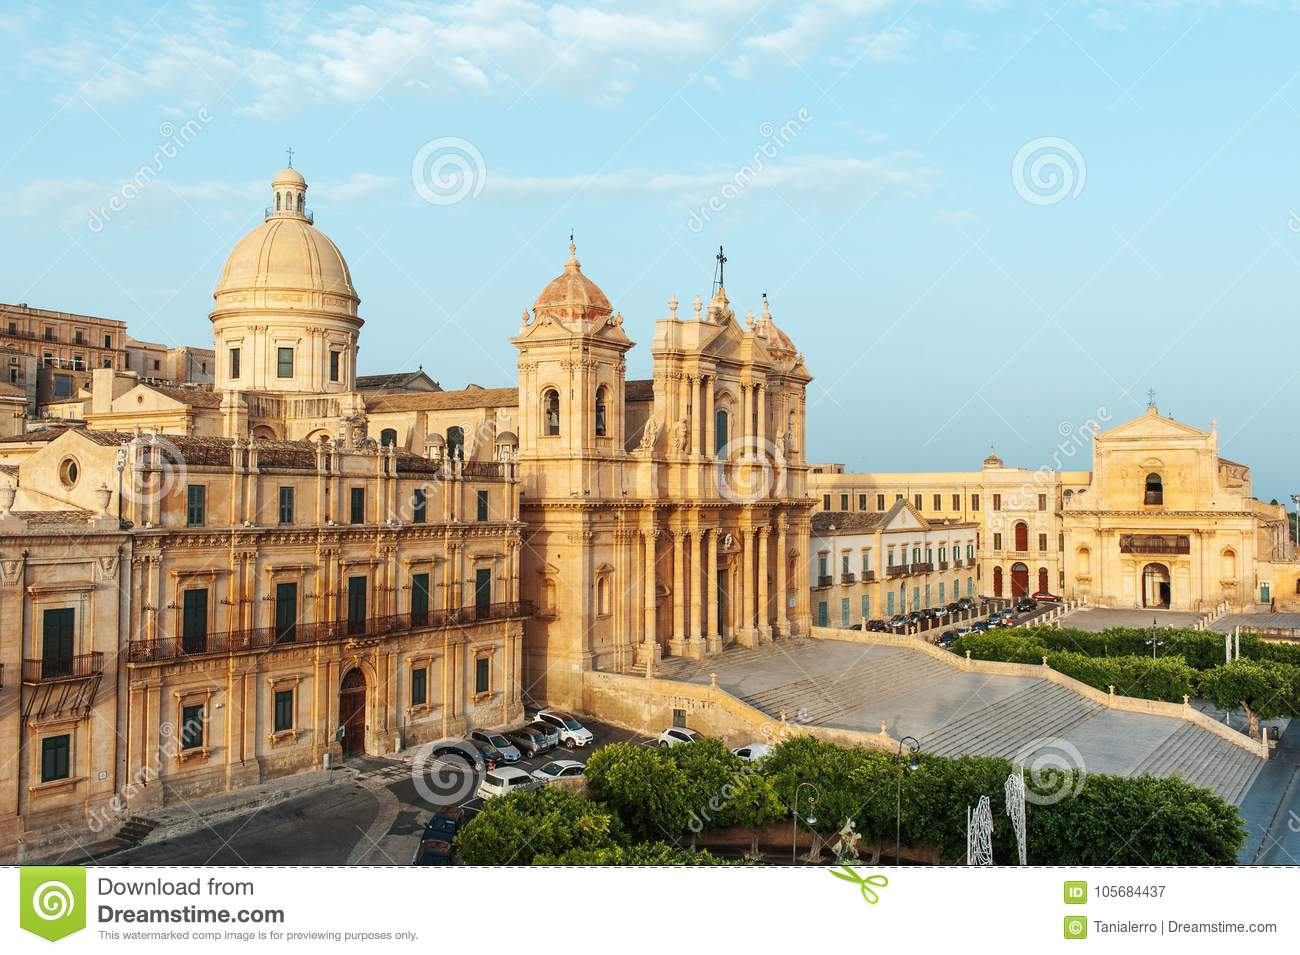 Scenic view of the Noto cathedral church, example of baroque architecture, Sicily, Italy